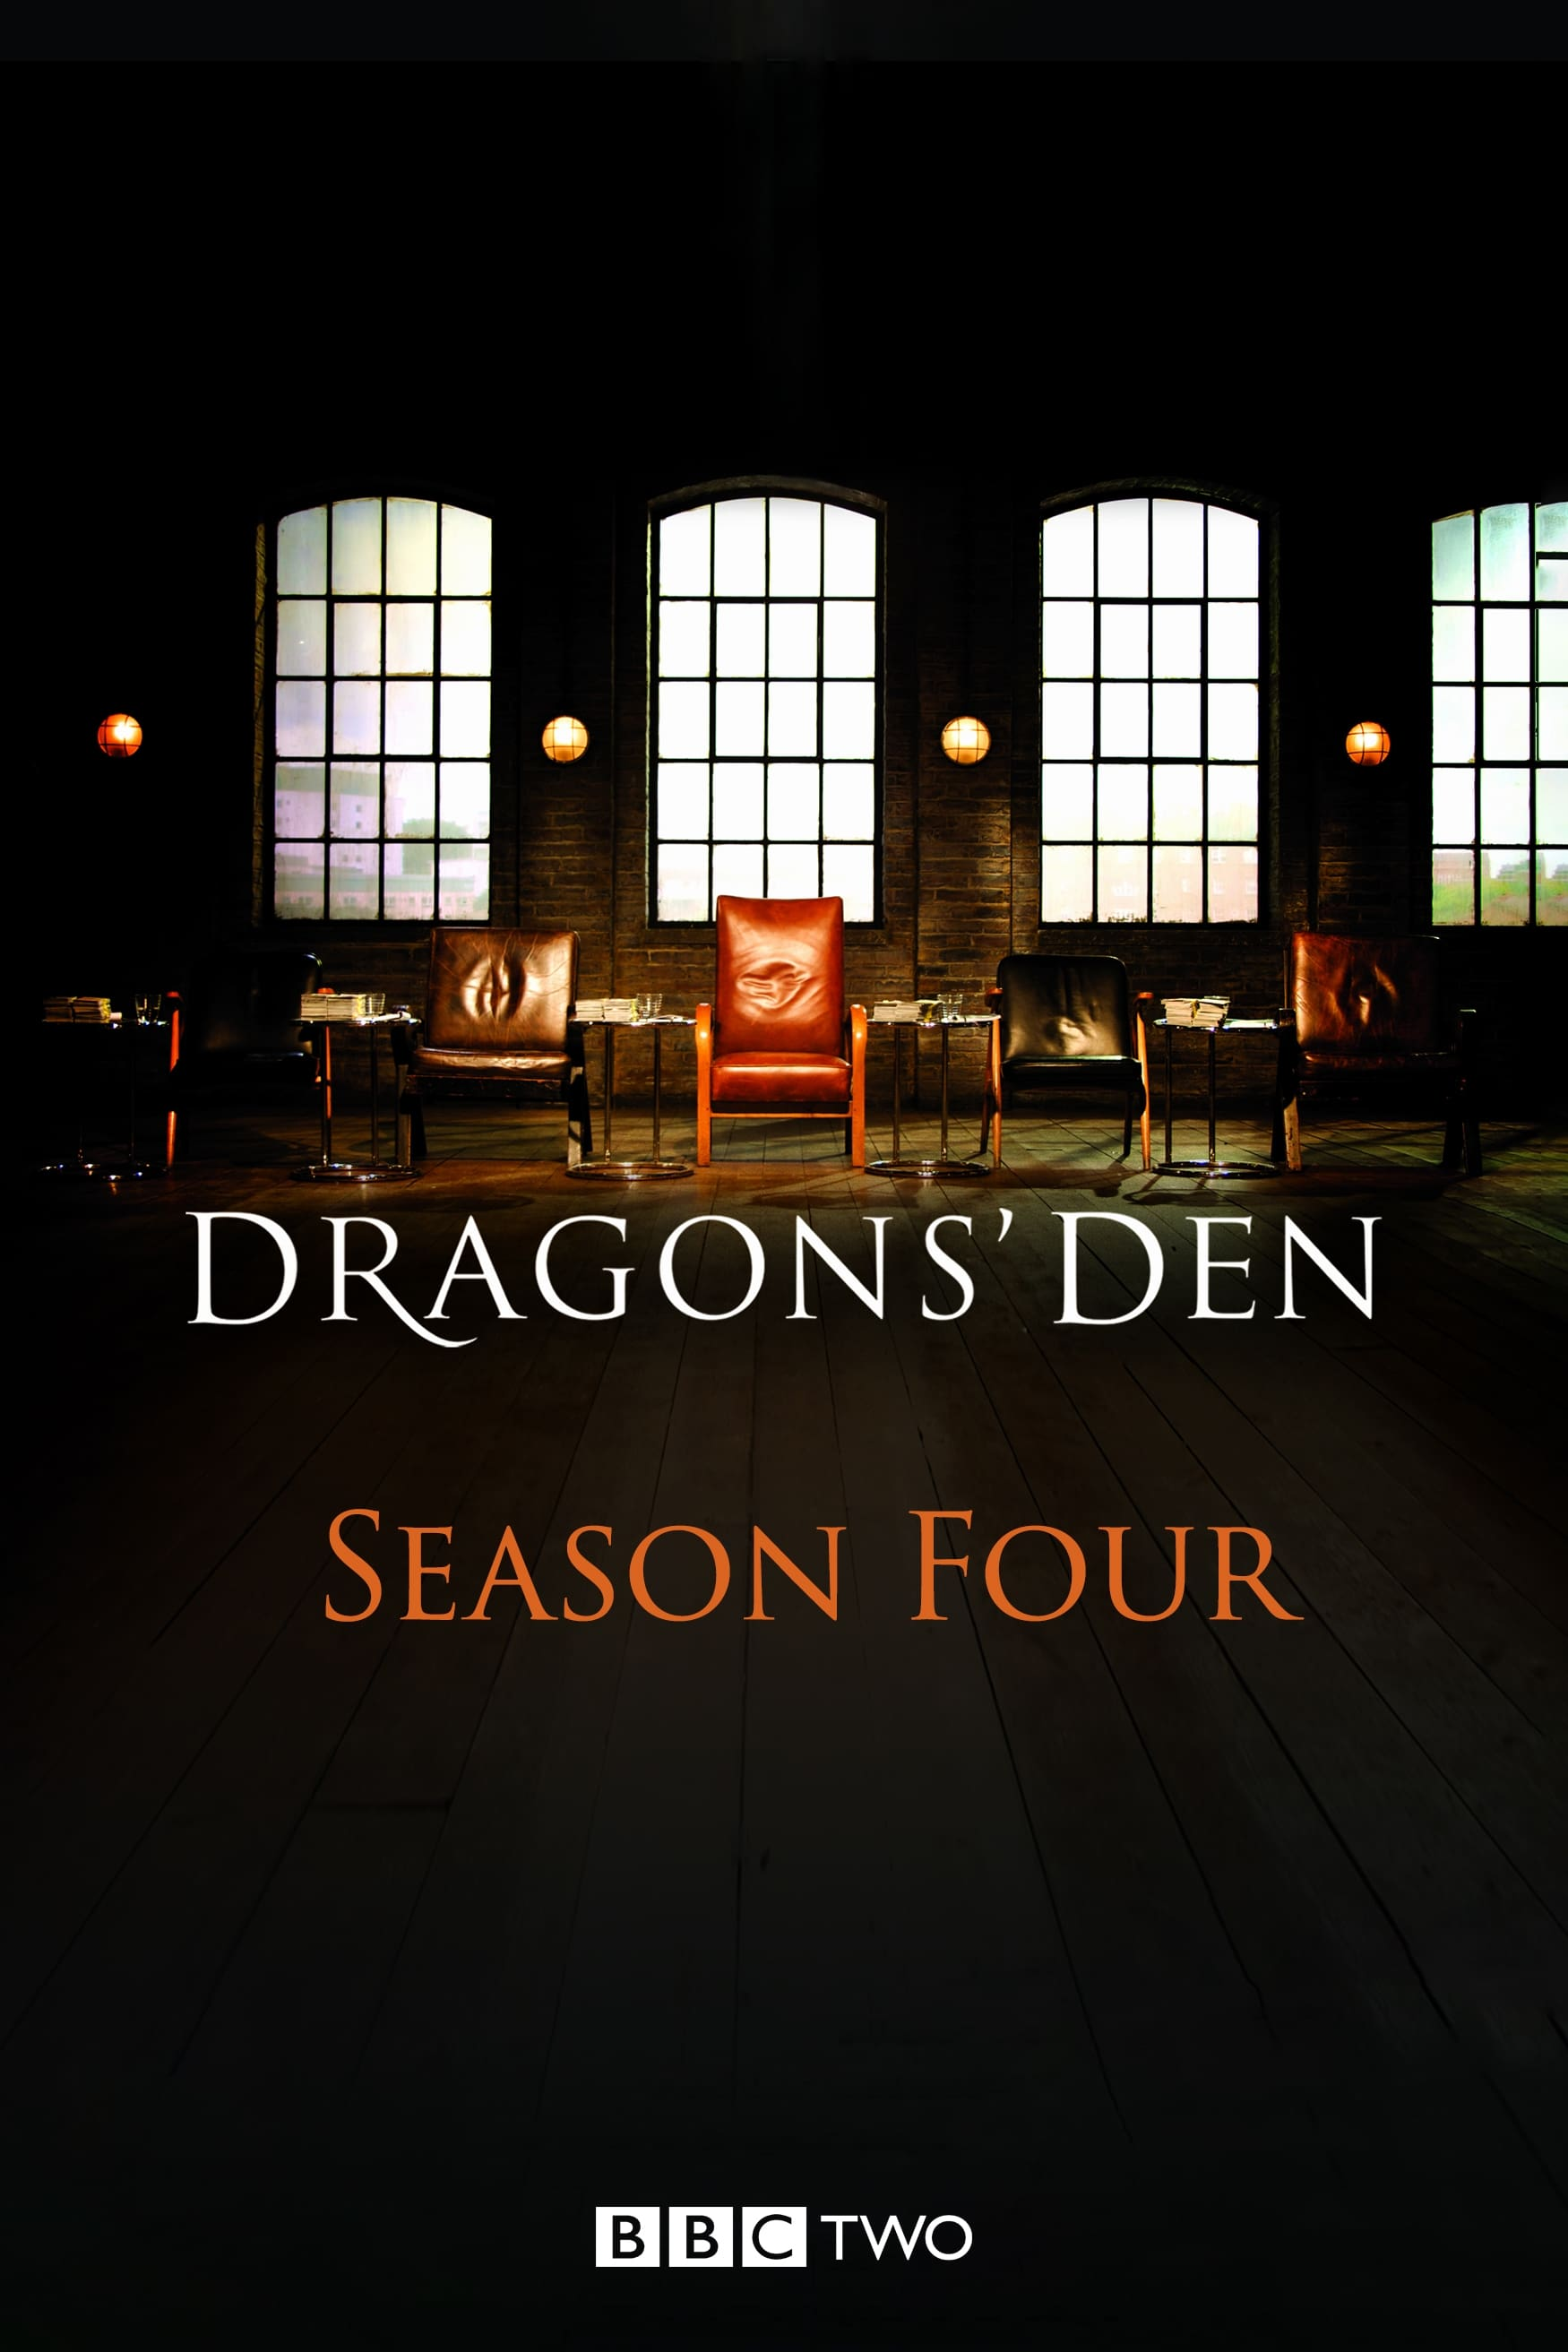 Dragons' Den Season 4